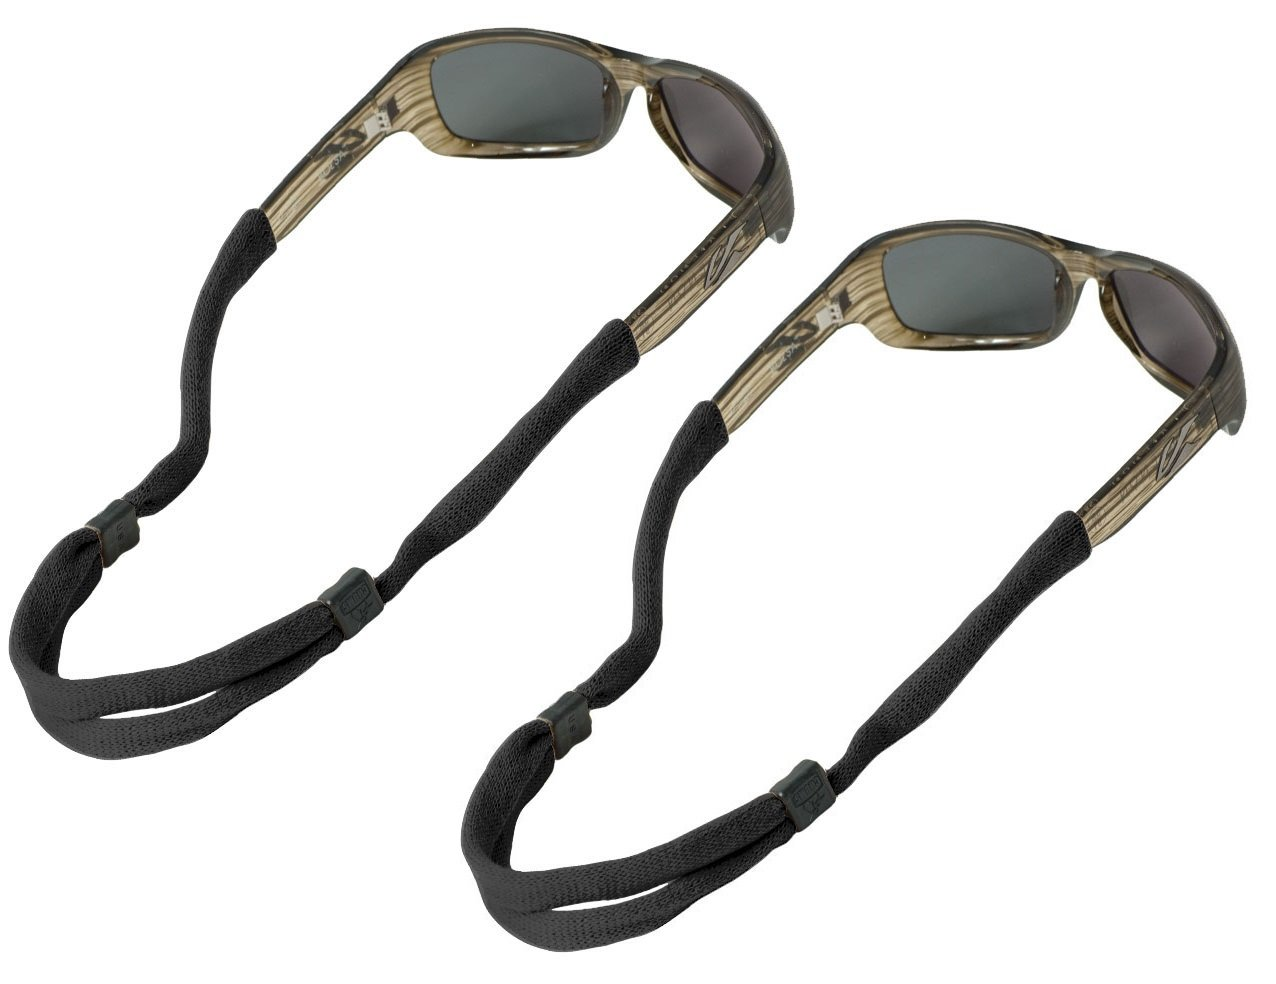 Chums No Tail Adjustable Cotton Eyeglass and Sunglass Retainer / Strap, Black (2 Pack) by Chums